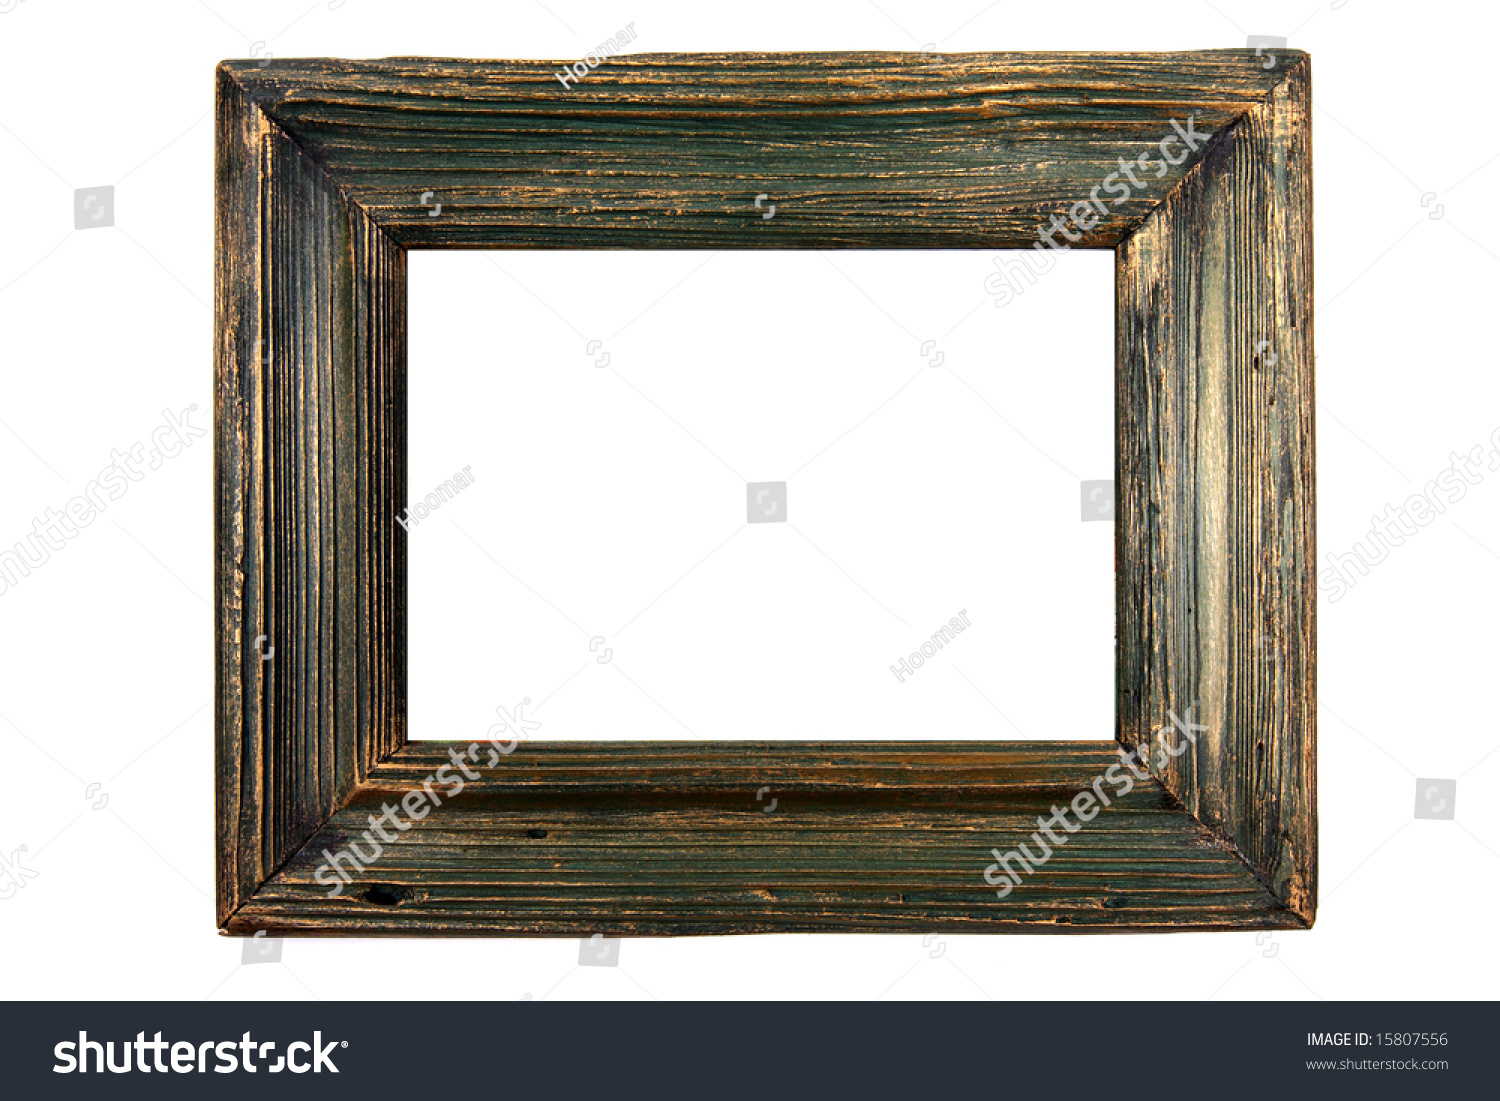 all images all images photos vectors illustrations footage music old wooden frame